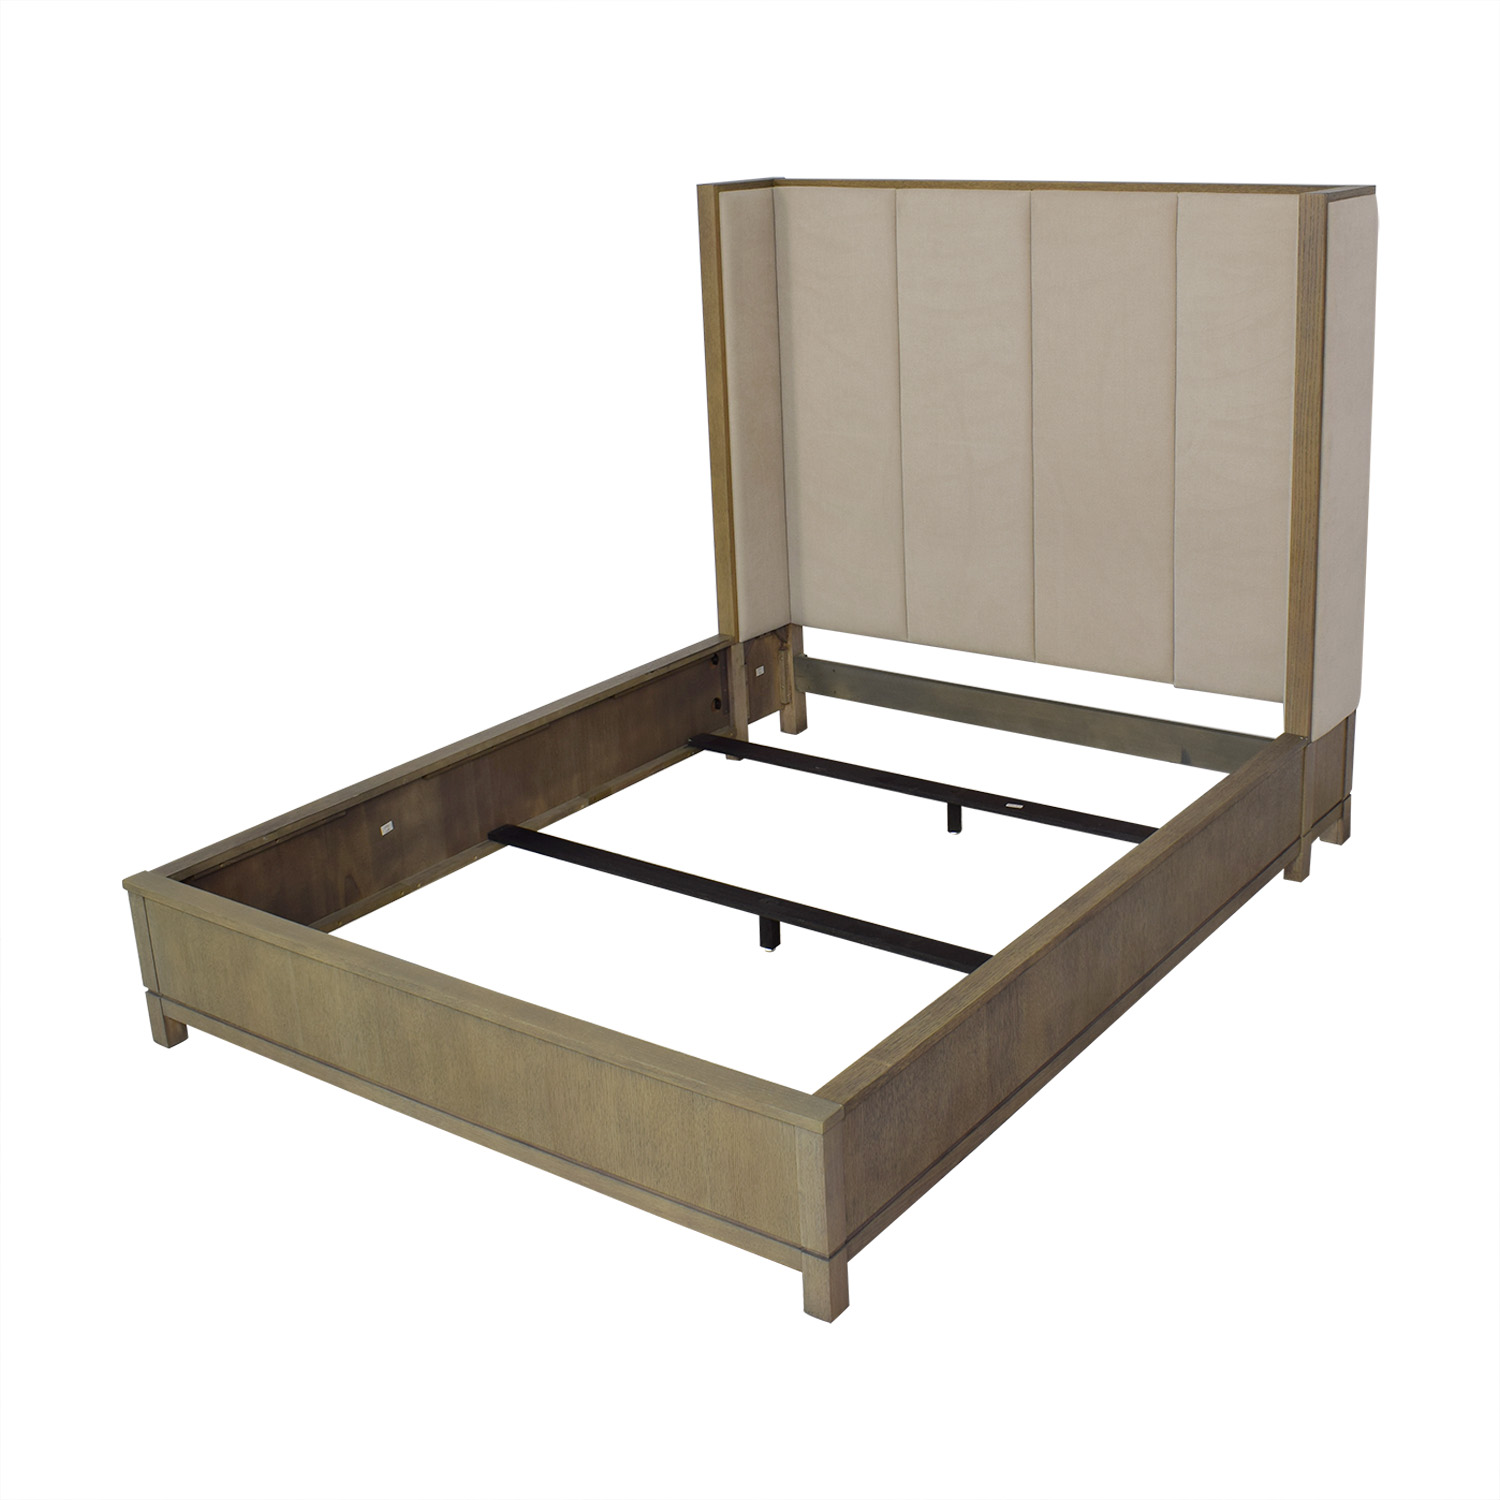 Macy's Macy's Highline Queen Bed Frame nyc